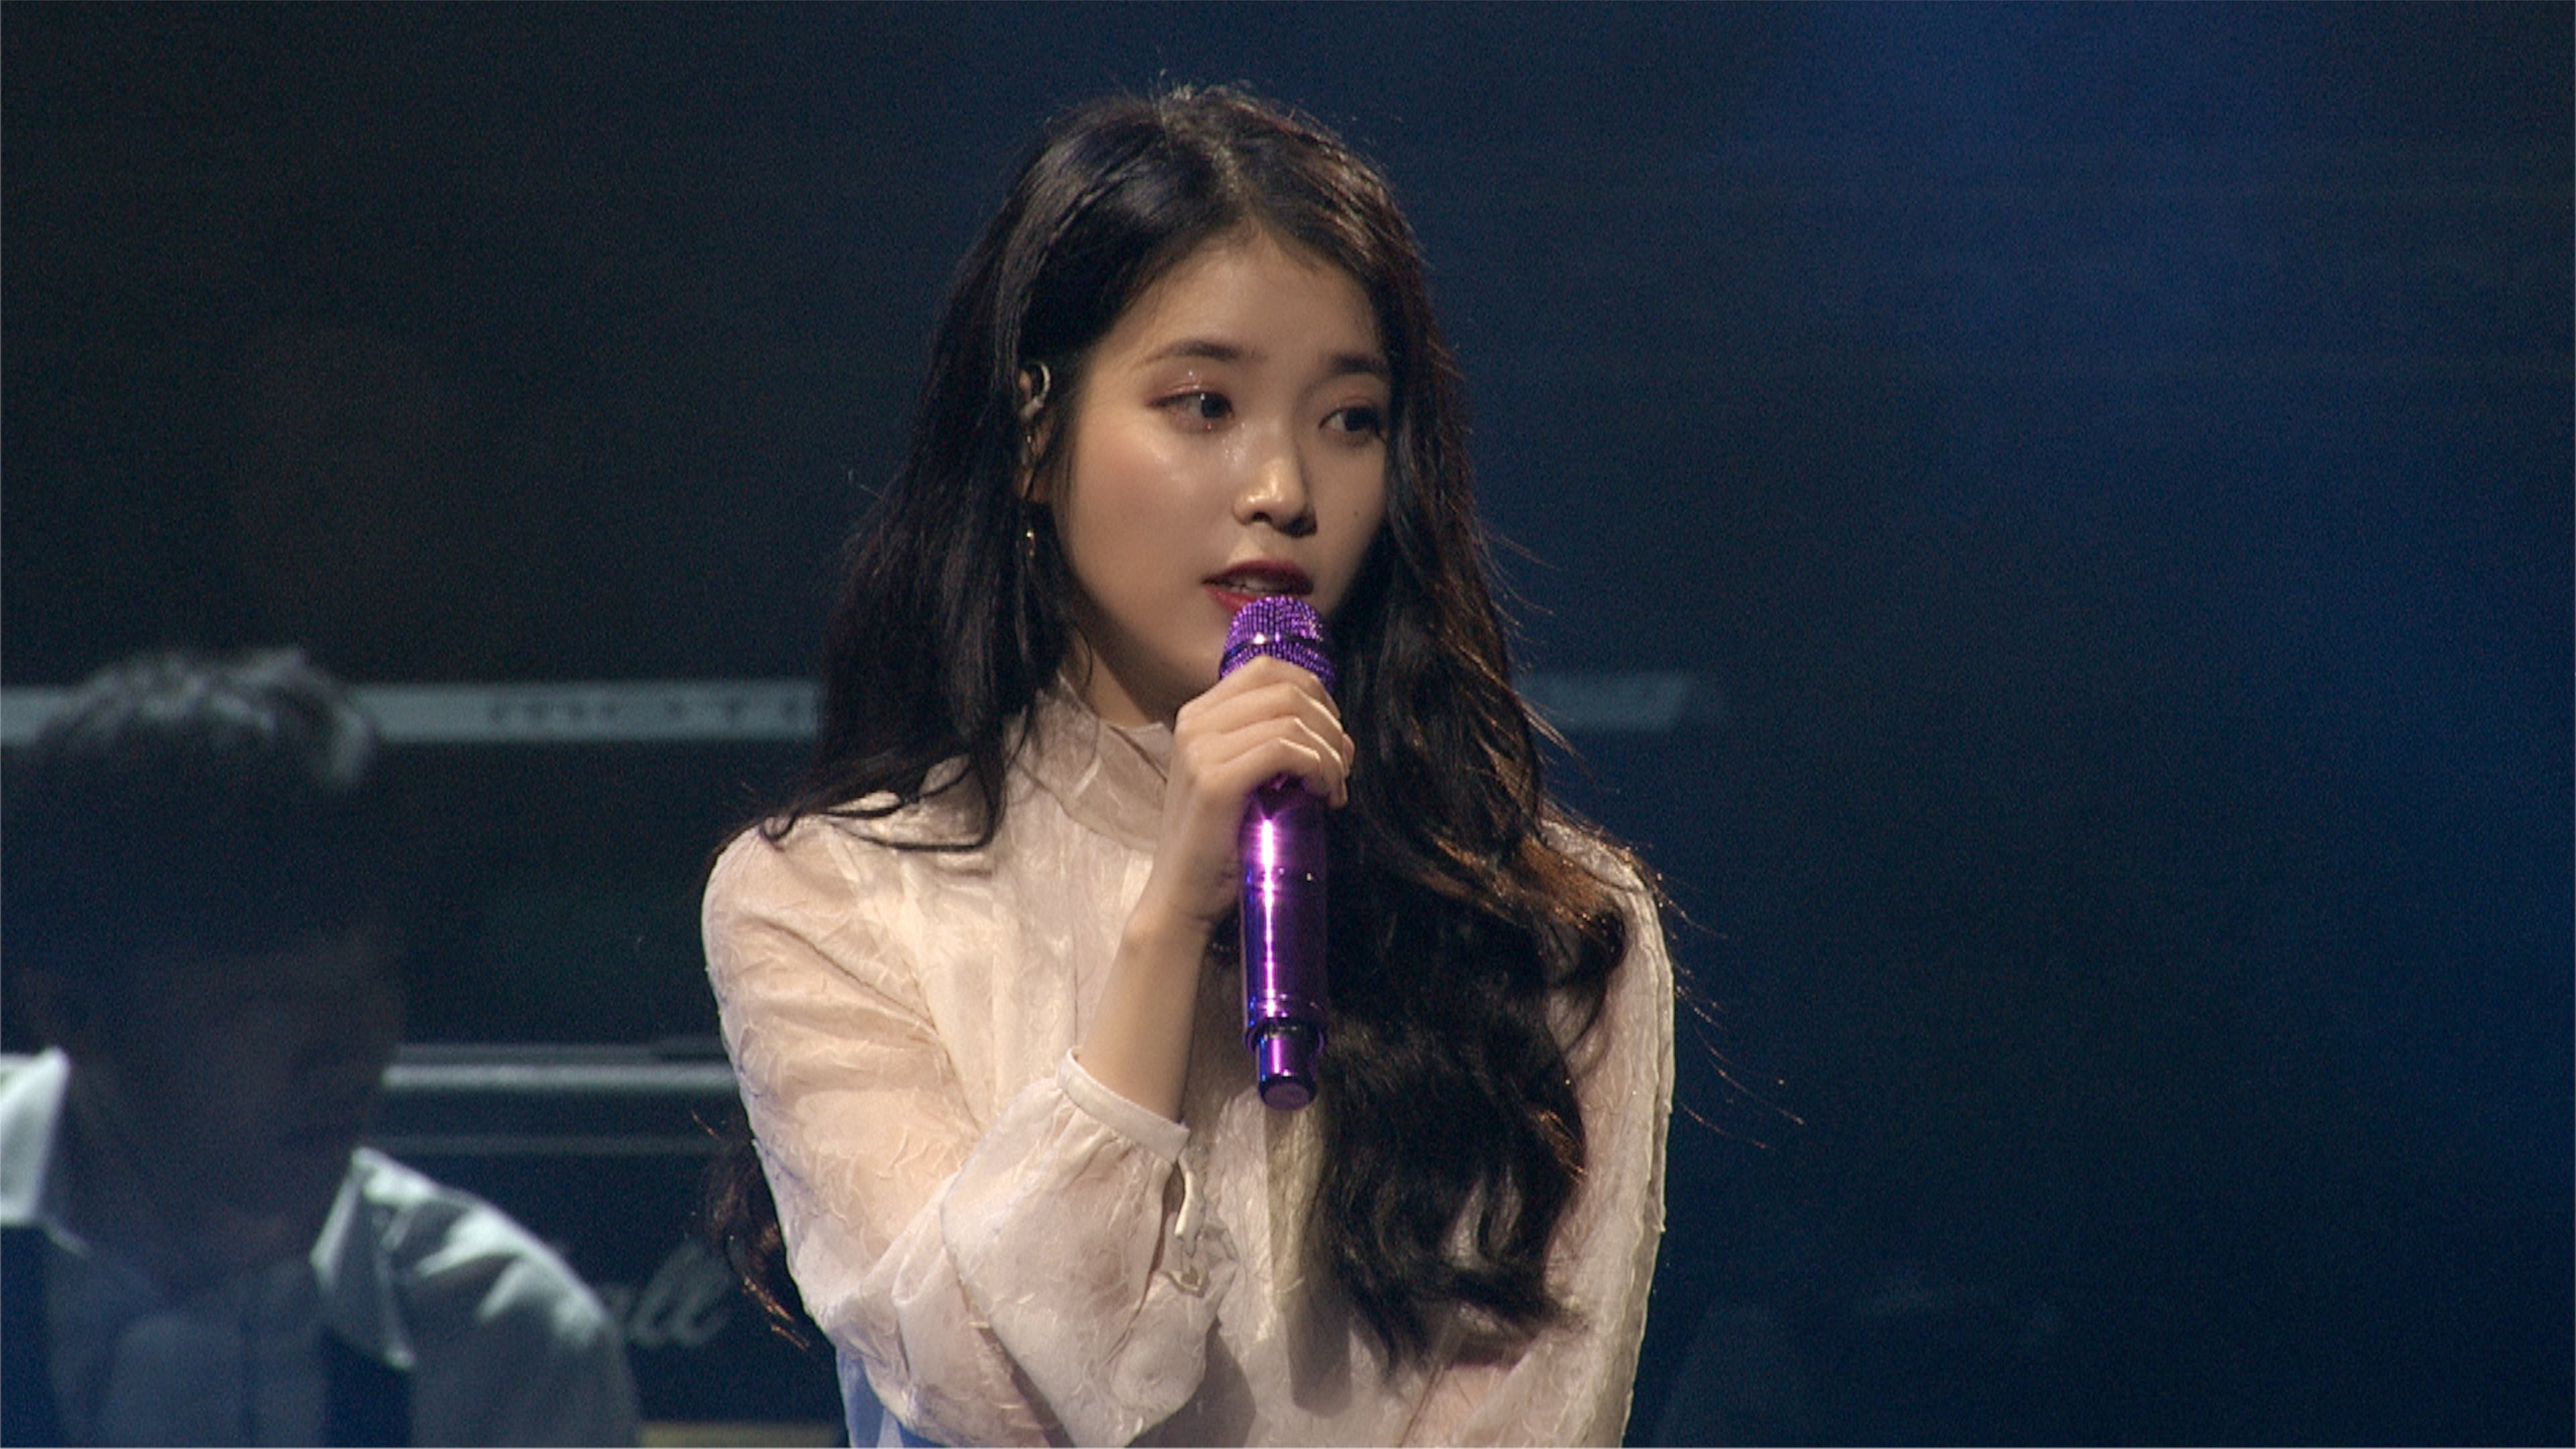 [IU TV] IU 10th Anniv. Tour Concert 'dlwlrma. (이 지금)' - Singapore